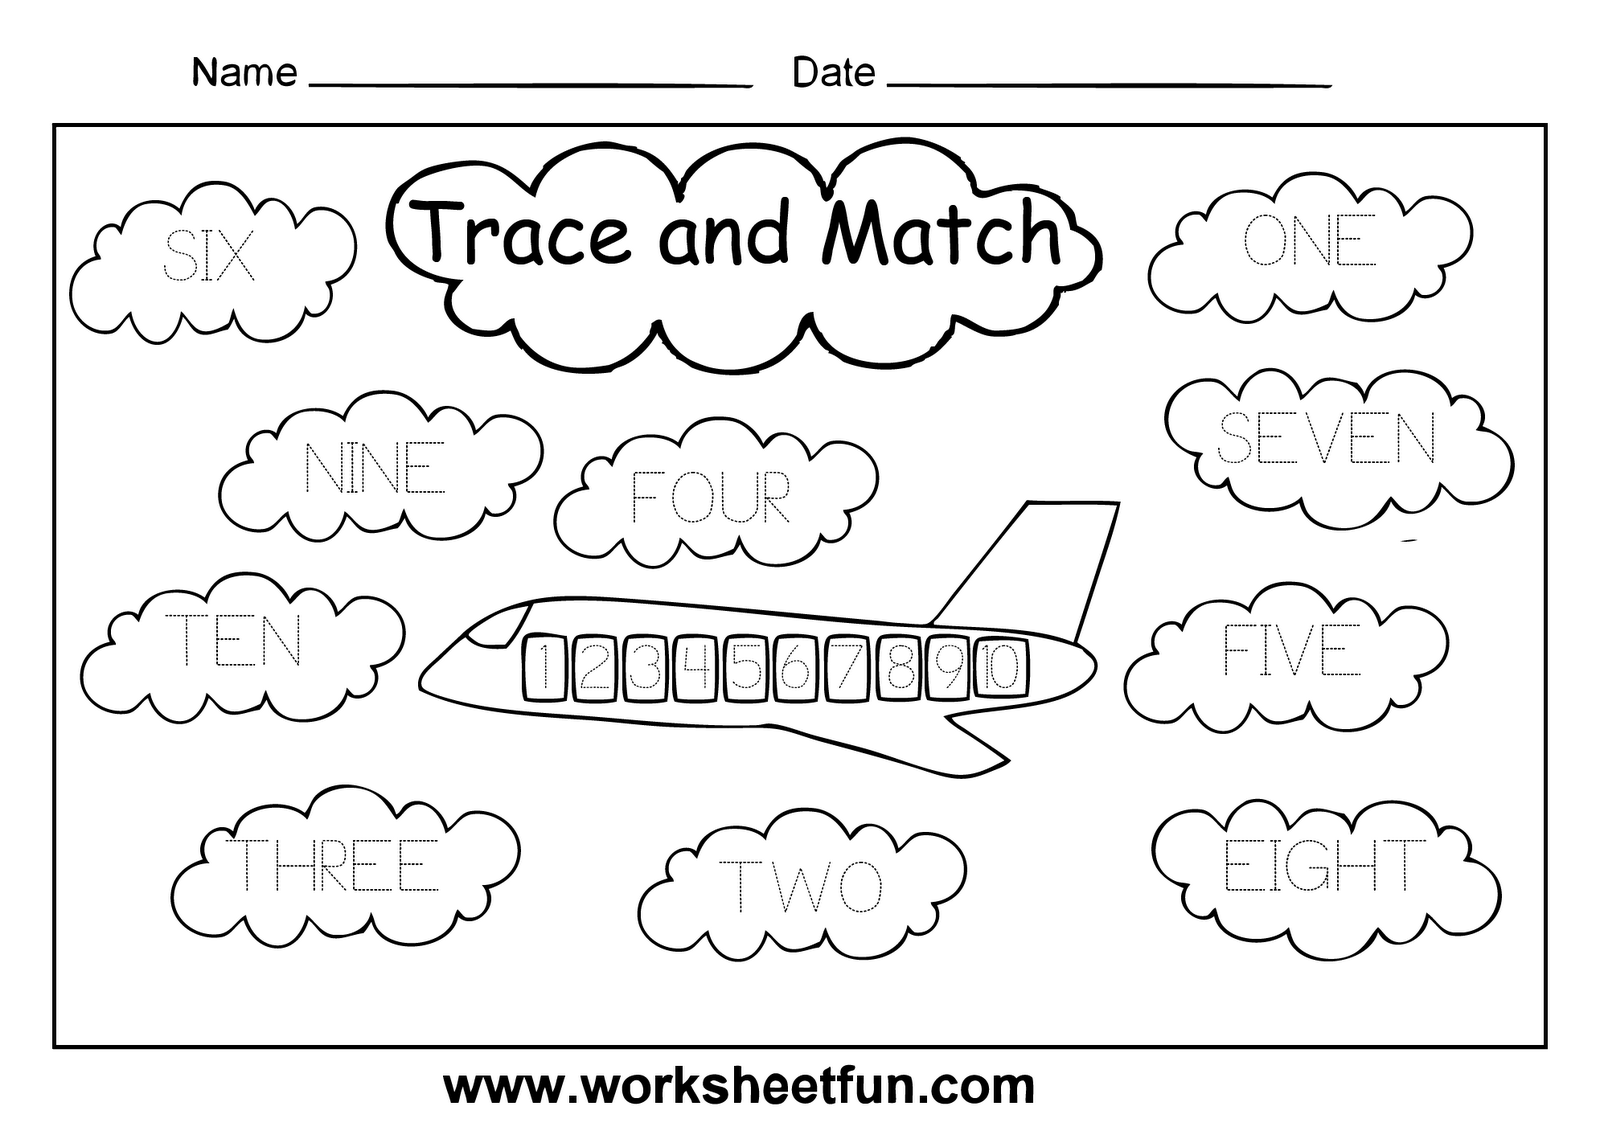 Weirdmailus  Gorgeous Worksheet Numbers    Reocurent With Interesting Farming Worksheets Besides Main Clause And Subordinate Clause Worksheet Furthermore Musical Symbols Worksheet With Delightful Microorganisms Worksheets Also Worksheets For Year  In Addition  Step Equation Word Problems Worksheets And Time Elapsed Worksheet As Well As Worksheet Of Addition And Subtraction Additionally Free Printable Sequencing Worksheets For Kindergarten From Reocurentcom With Weirdmailus  Interesting Worksheet Numbers    Reocurent With Delightful Farming Worksheets Besides Main Clause And Subordinate Clause Worksheet Furthermore Musical Symbols Worksheet And Gorgeous Microorganisms Worksheets Also Worksheets For Year  In Addition  Step Equation Word Problems Worksheets From Reocurentcom